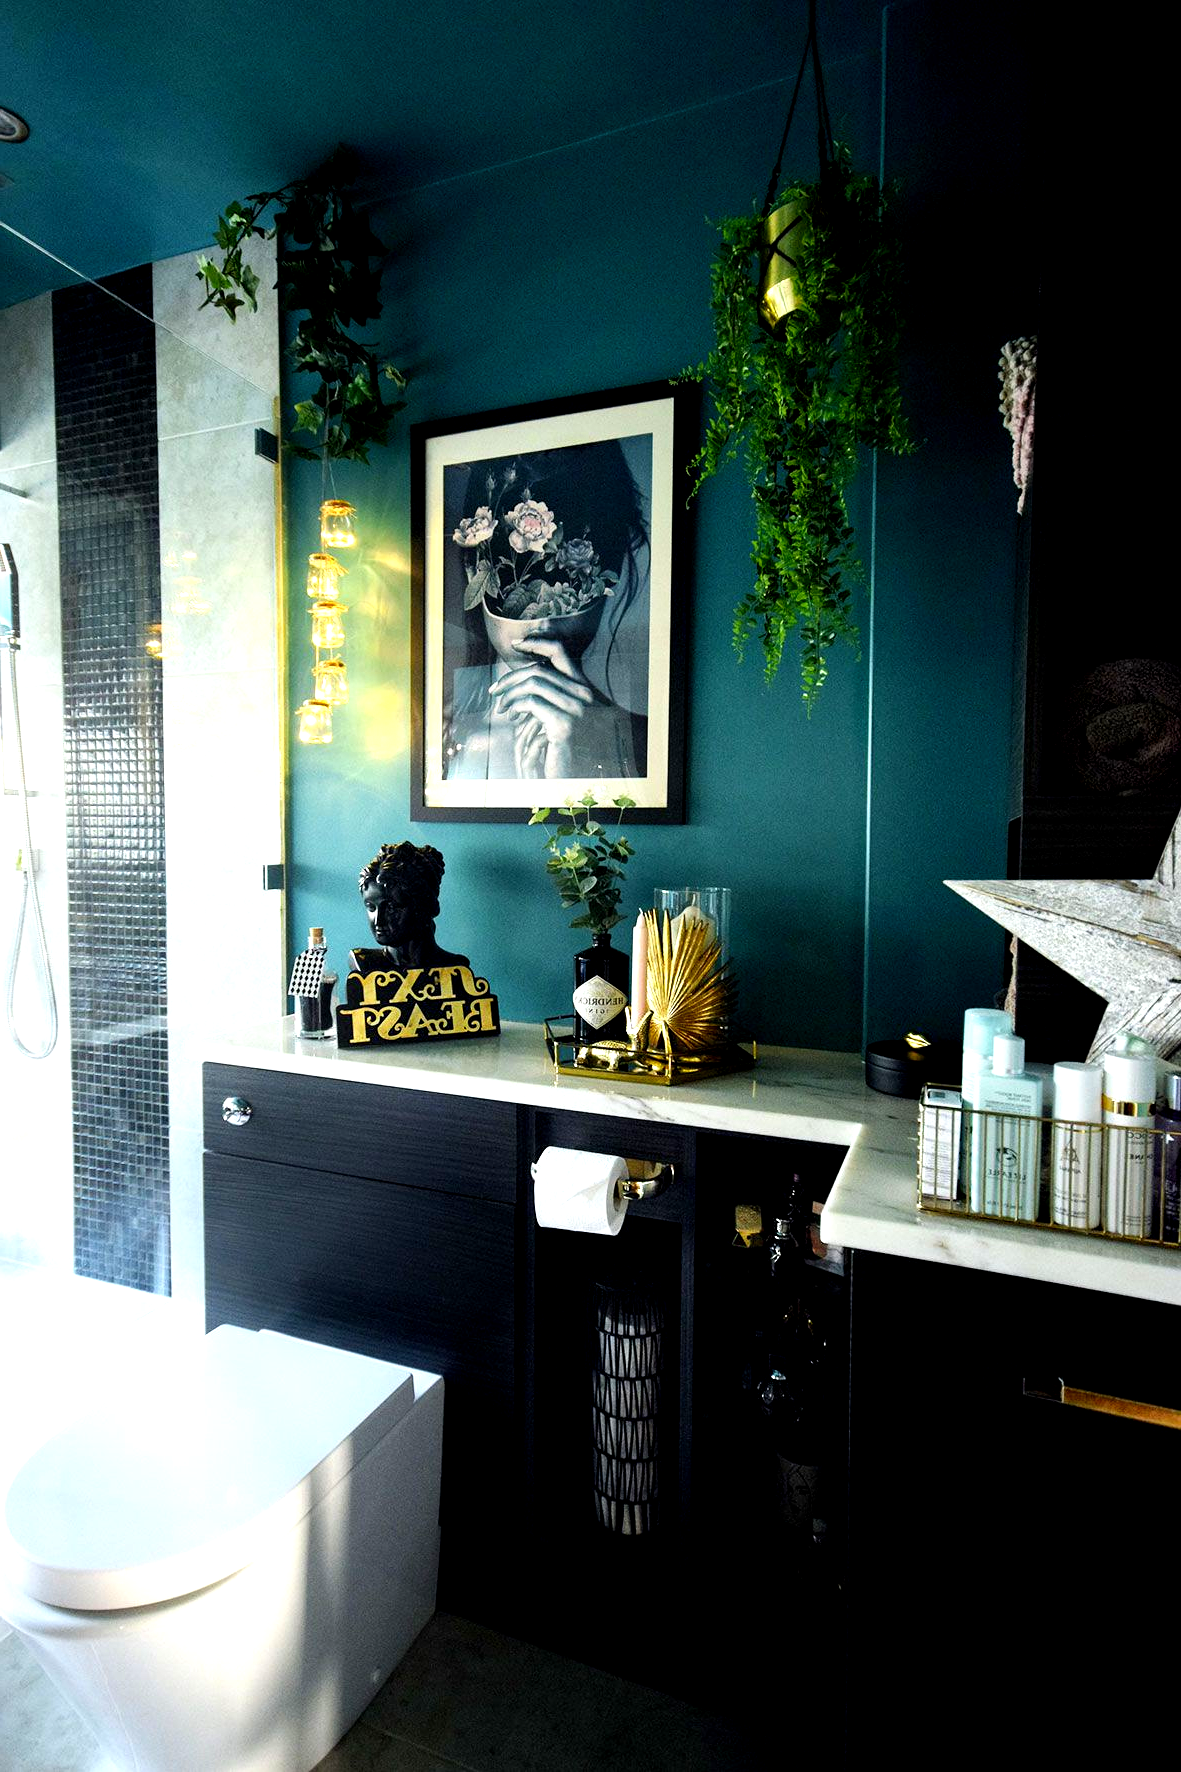 Luxury Teal Master Bathroom Makeover Reveal Part 1 Dark Large Dream Bathroom Inspirat Teal Bathroom Decor Teal Bathroom Accessories Bathroom Decor Luxury